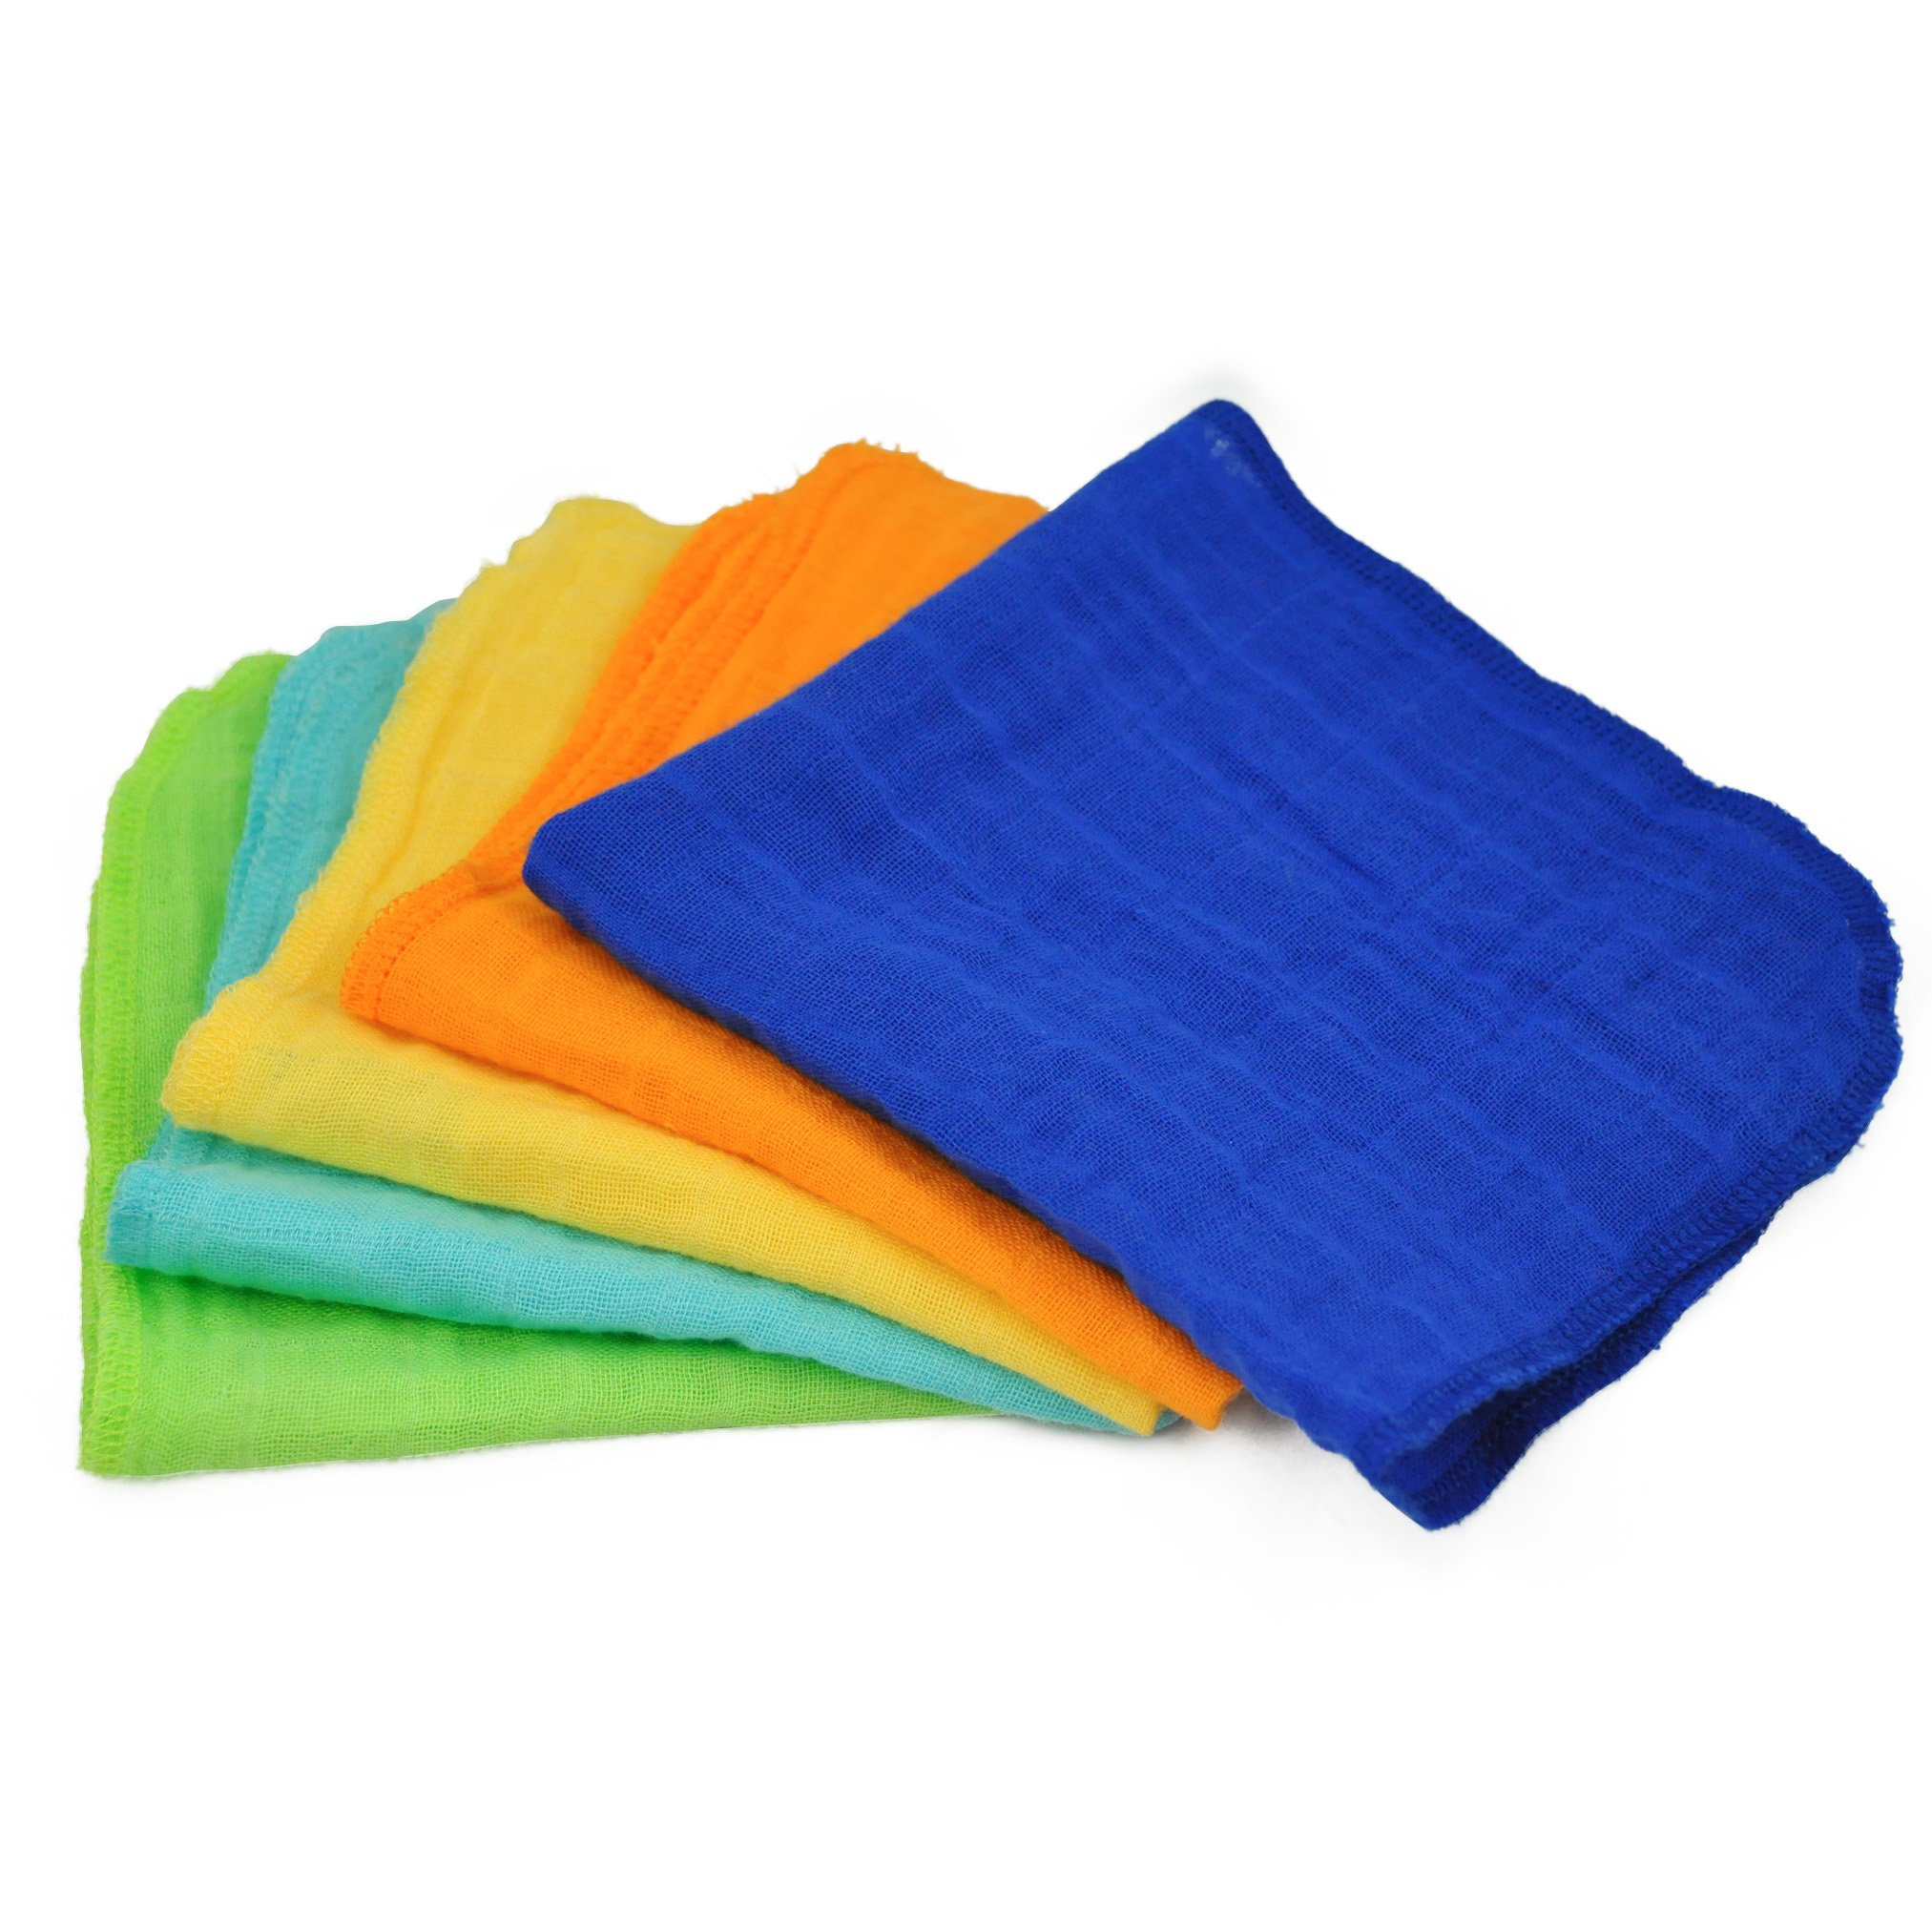 green sprouts Muslin Face Cloths made from Organic Cotton,Blue Set